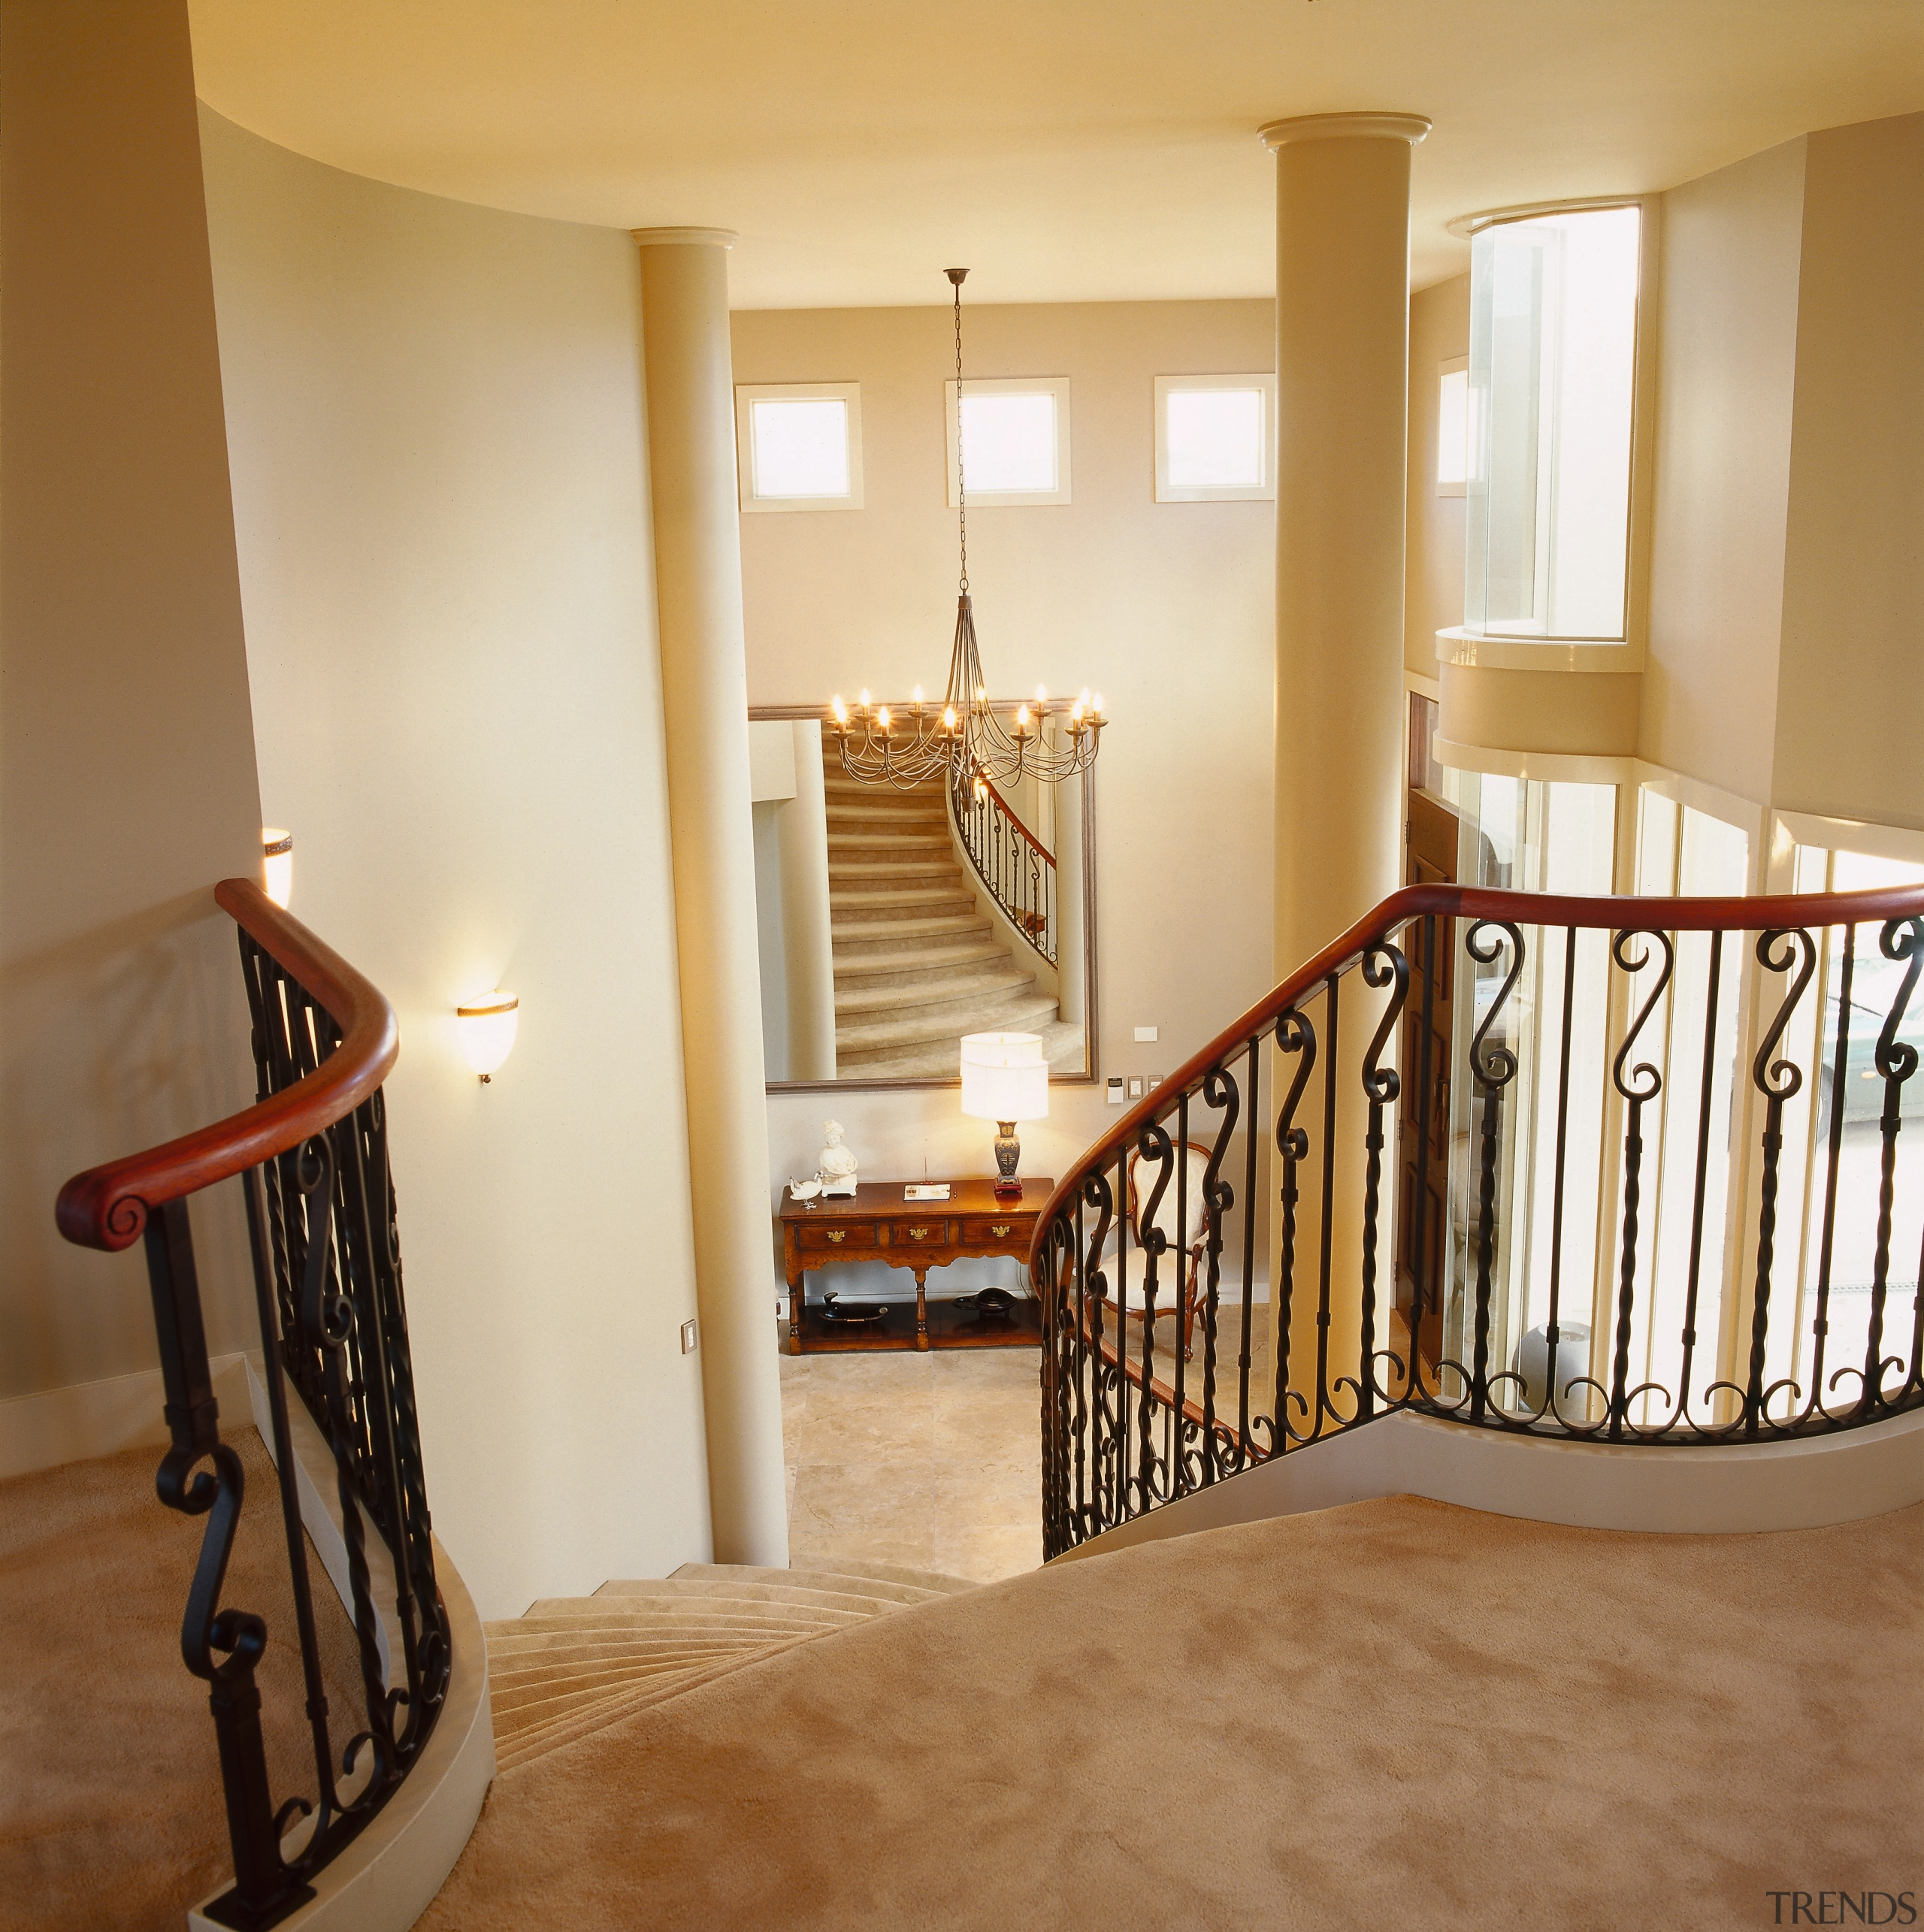 A view of the stair case in the baluster, bed frame, estate, floor, flooring, furniture, handrail, hardwood, home, interior design, laminate flooring, product, real estate, room, stairs, wall, wood, wood flooring, brown, orange